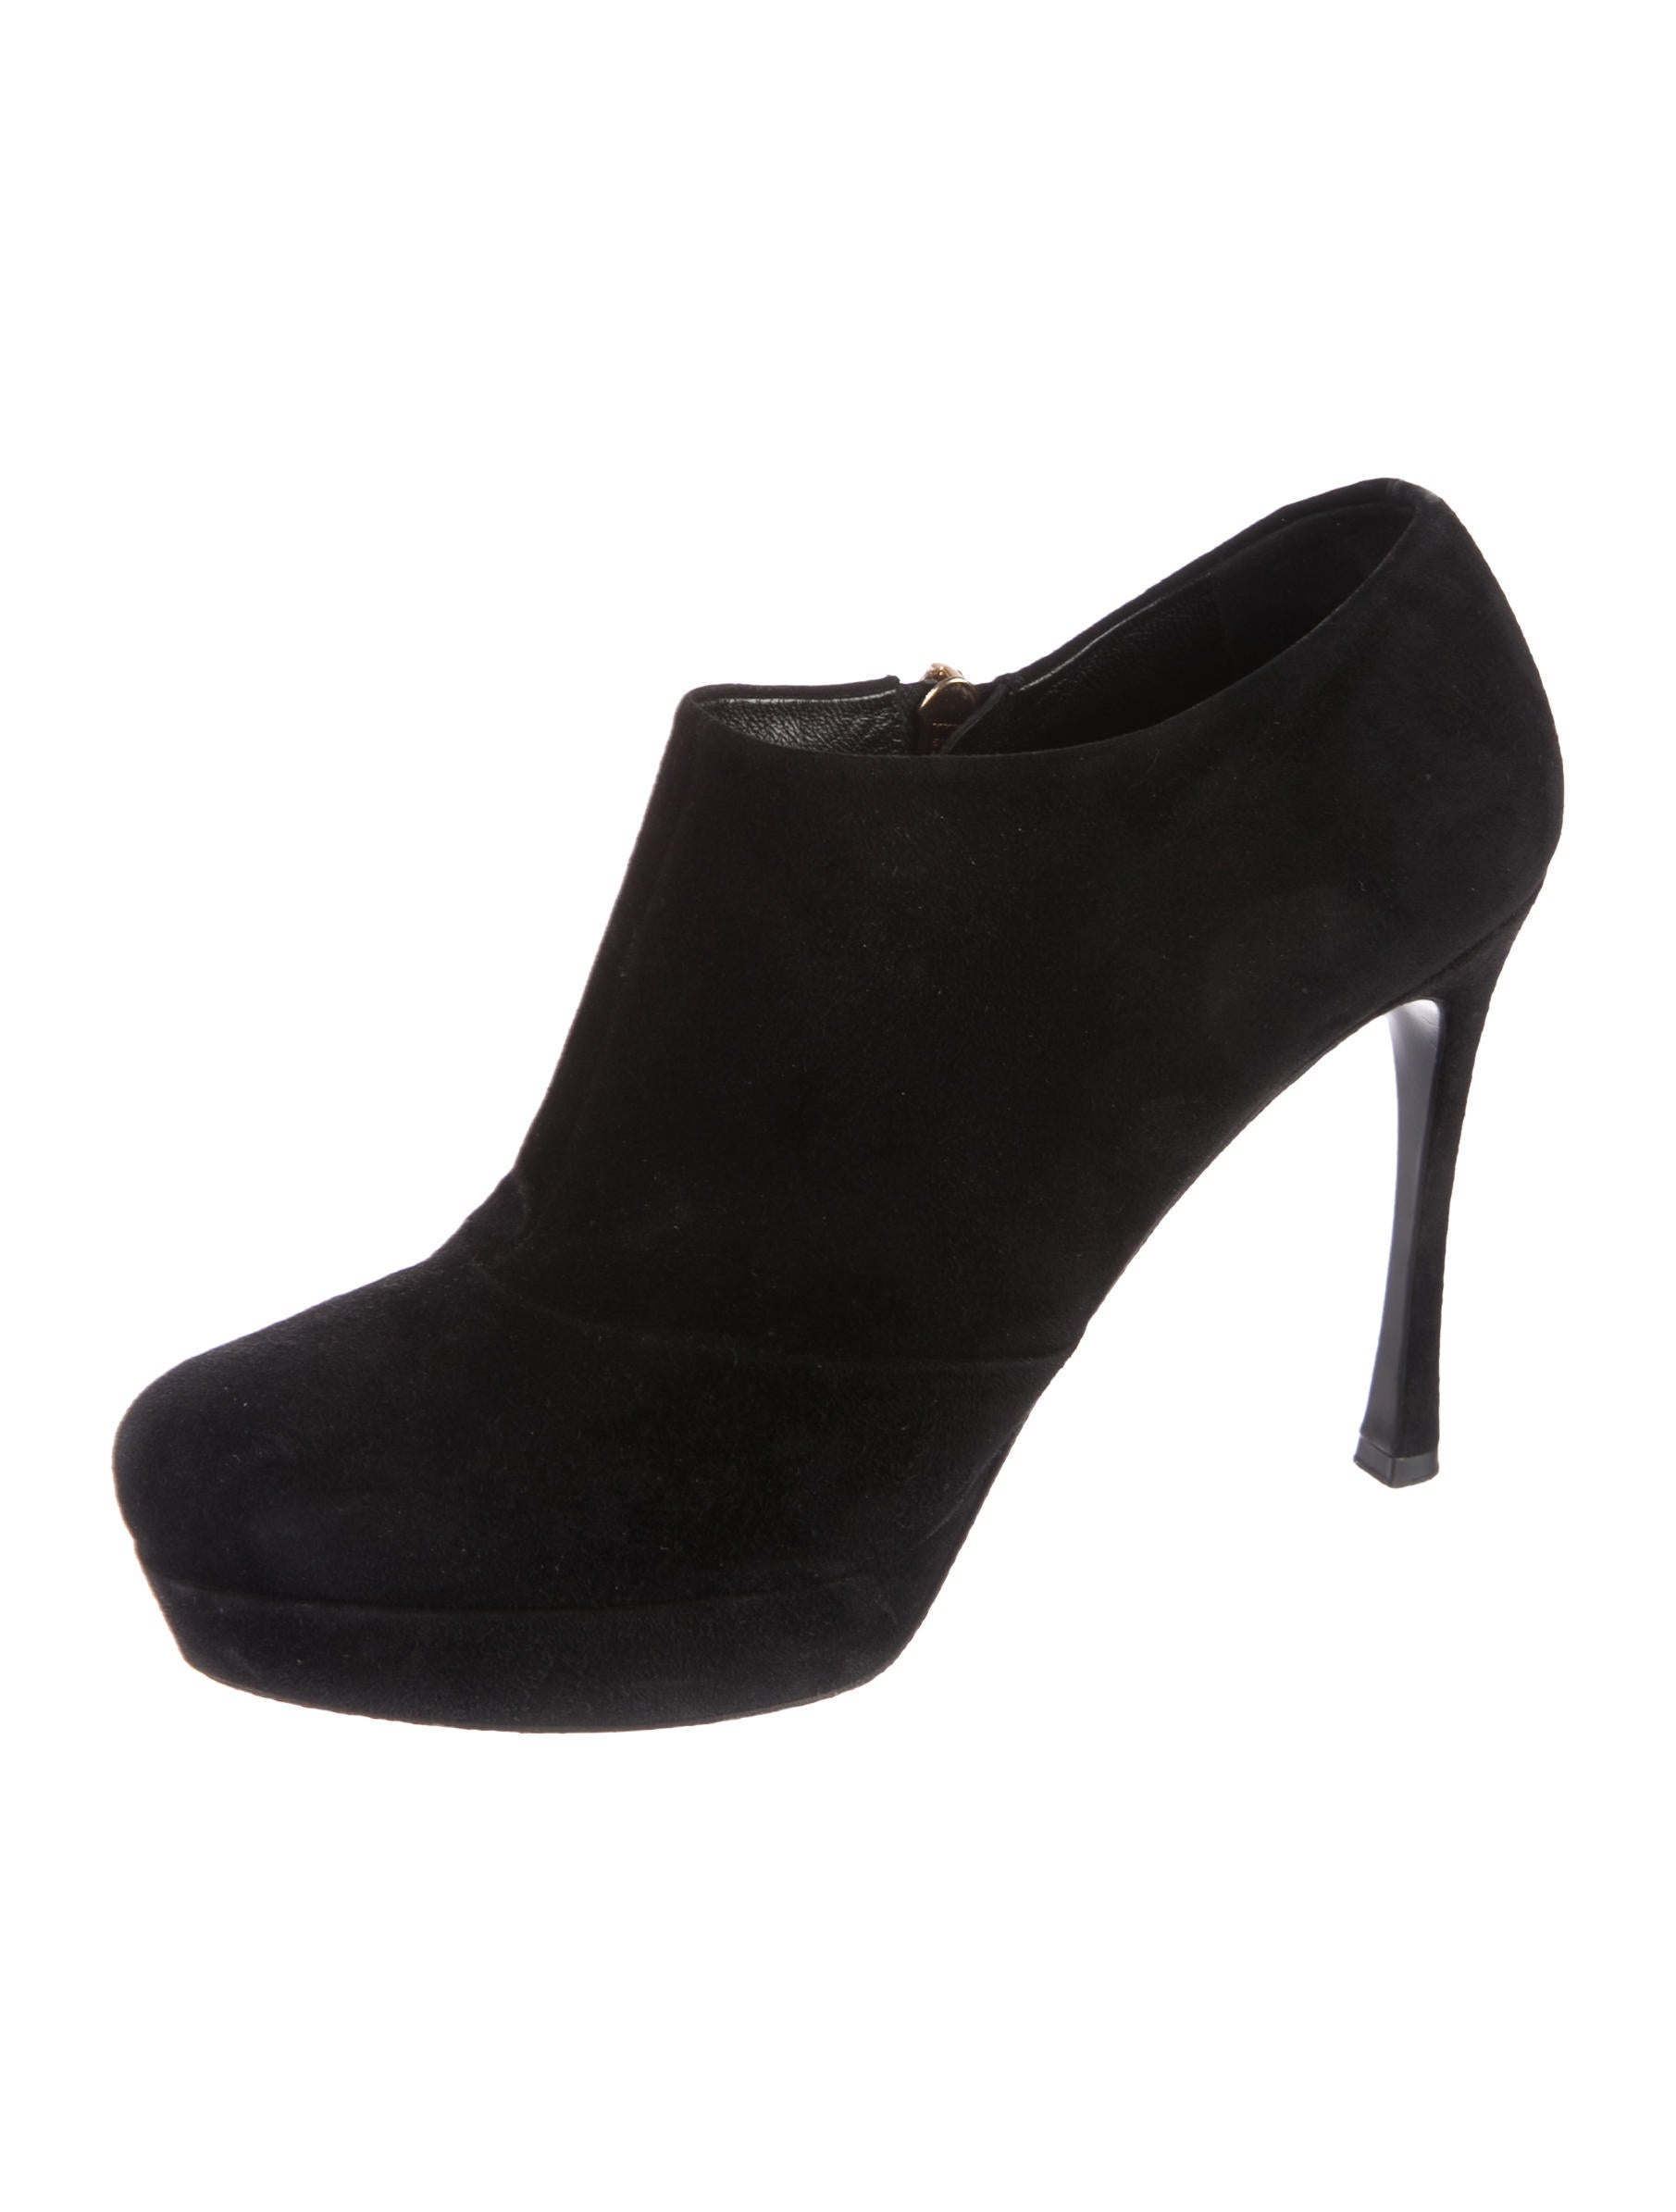 Yves Saint Laurent Leather Round-Toe Booties original sale online outlet fashionable quality free shipping 9t2r5